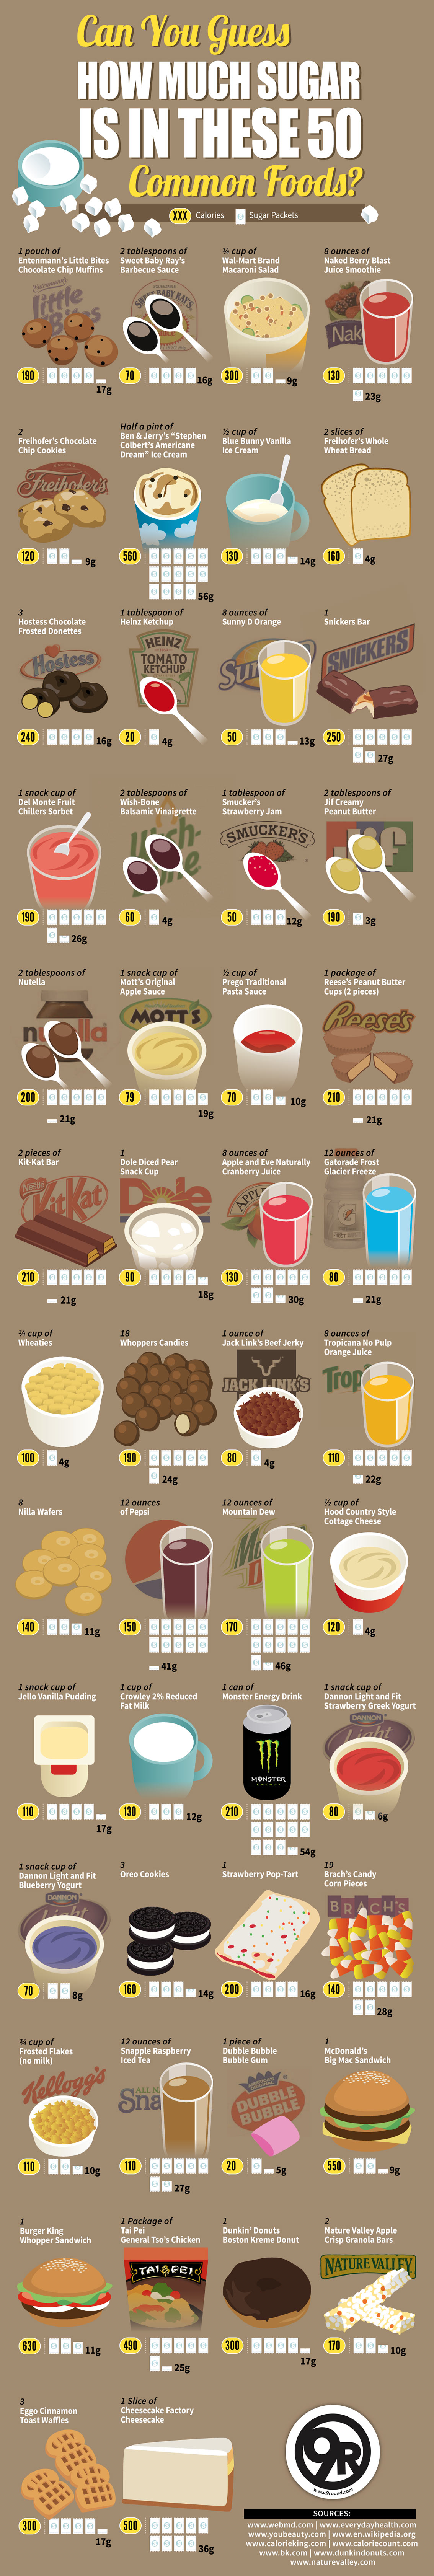 Amount of Sugar Content in Common Foods Chart